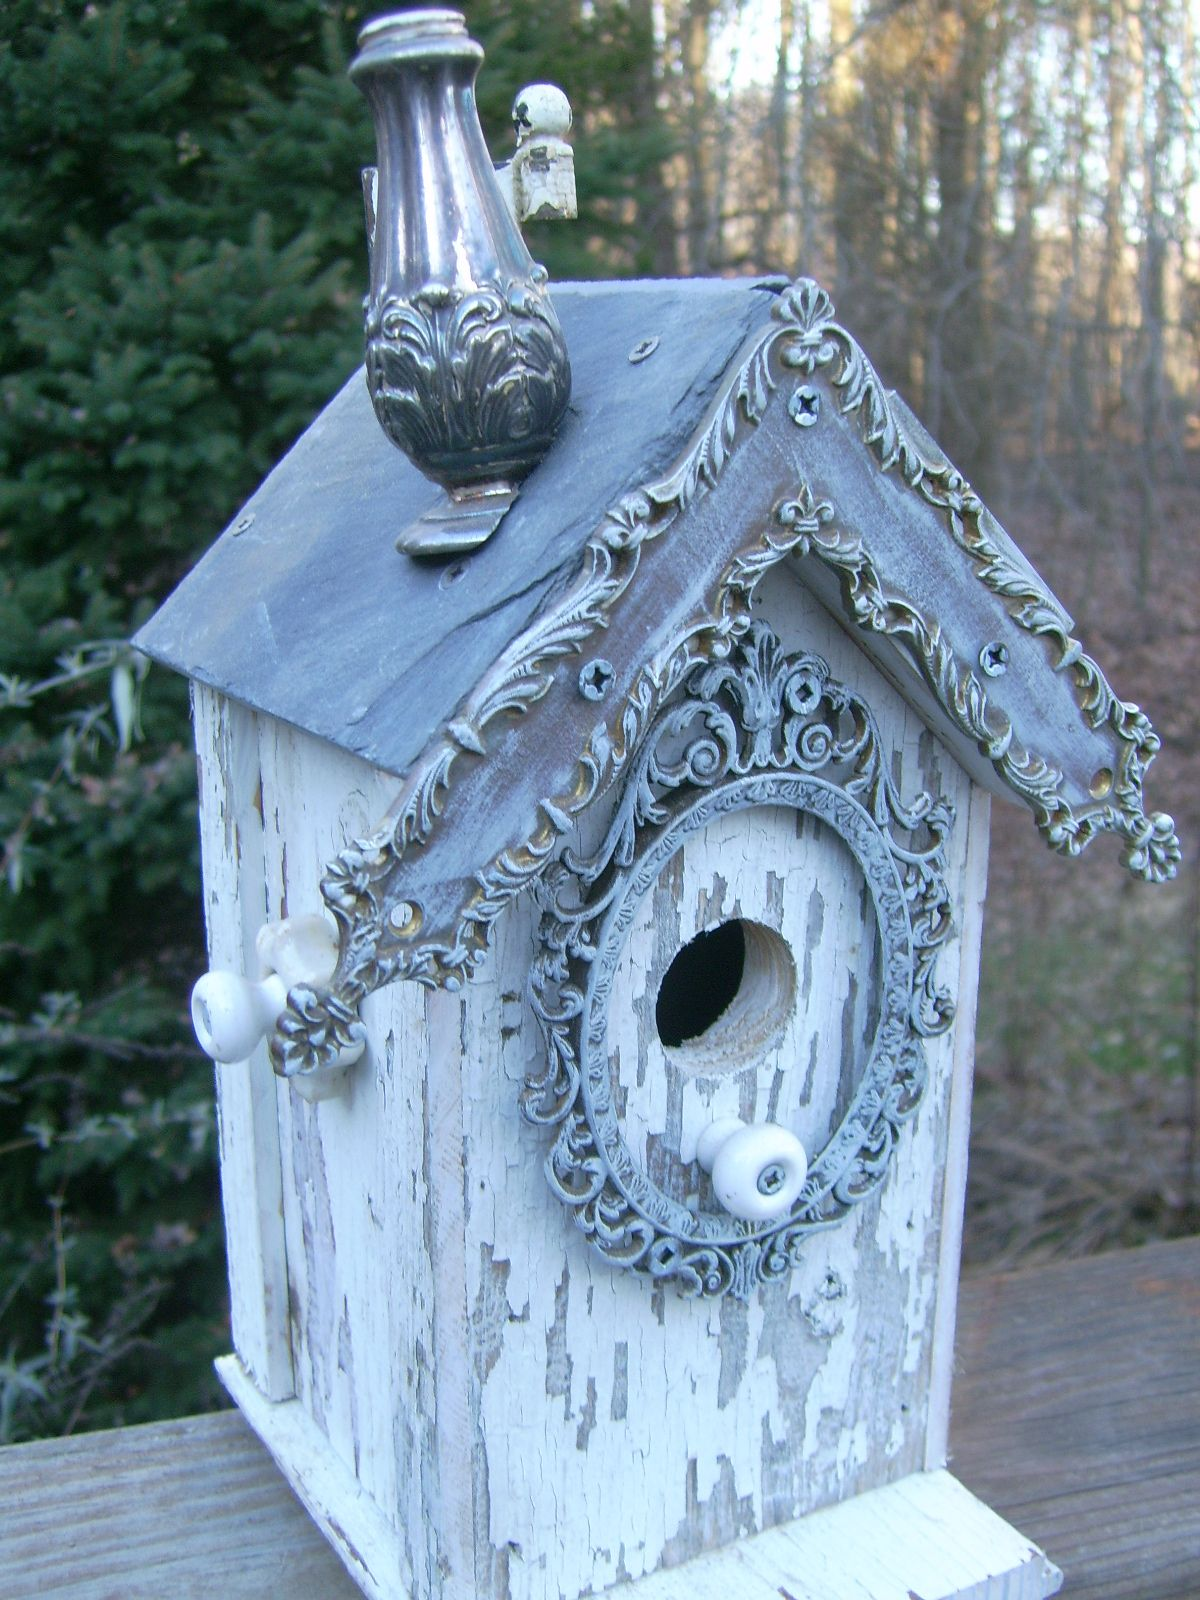 Best Shabby Chic Birdhouse With Salt Shaker Chimney Picture This Month